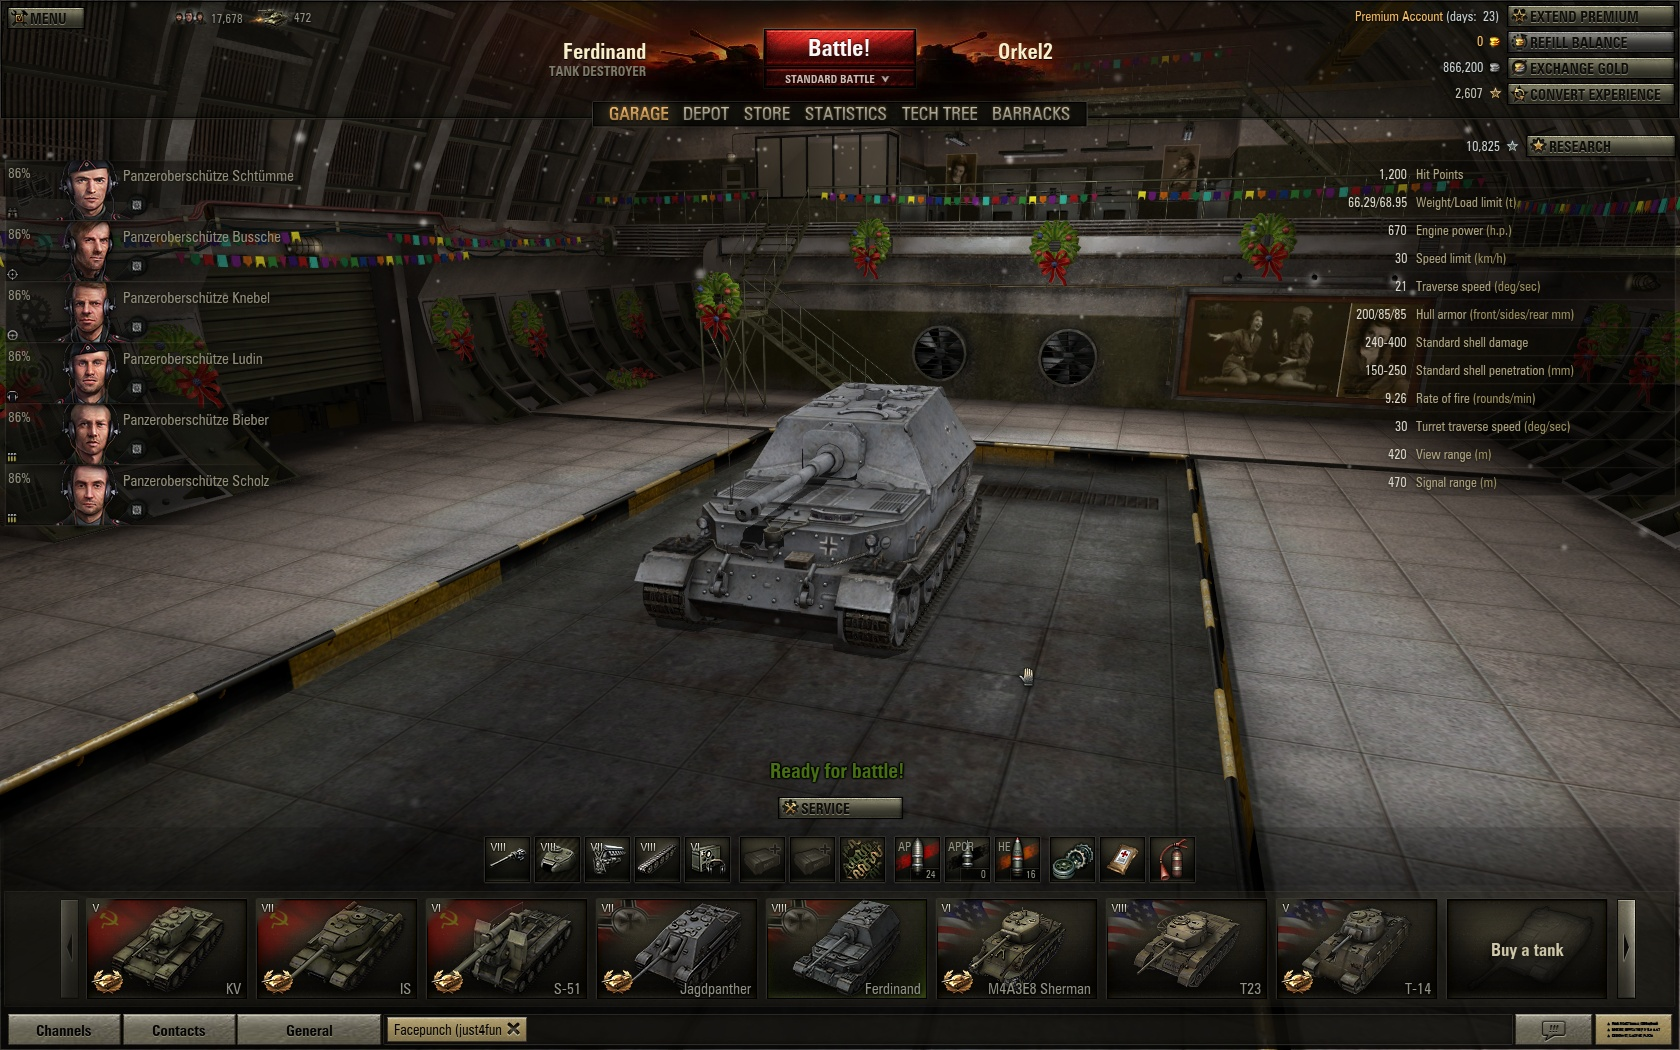 world of tanks matchmaking problems World of tanks 2m likes world of tanks is a team-based massively multiplayer online action game dedicated to early/mid-20th century era armored warfare.